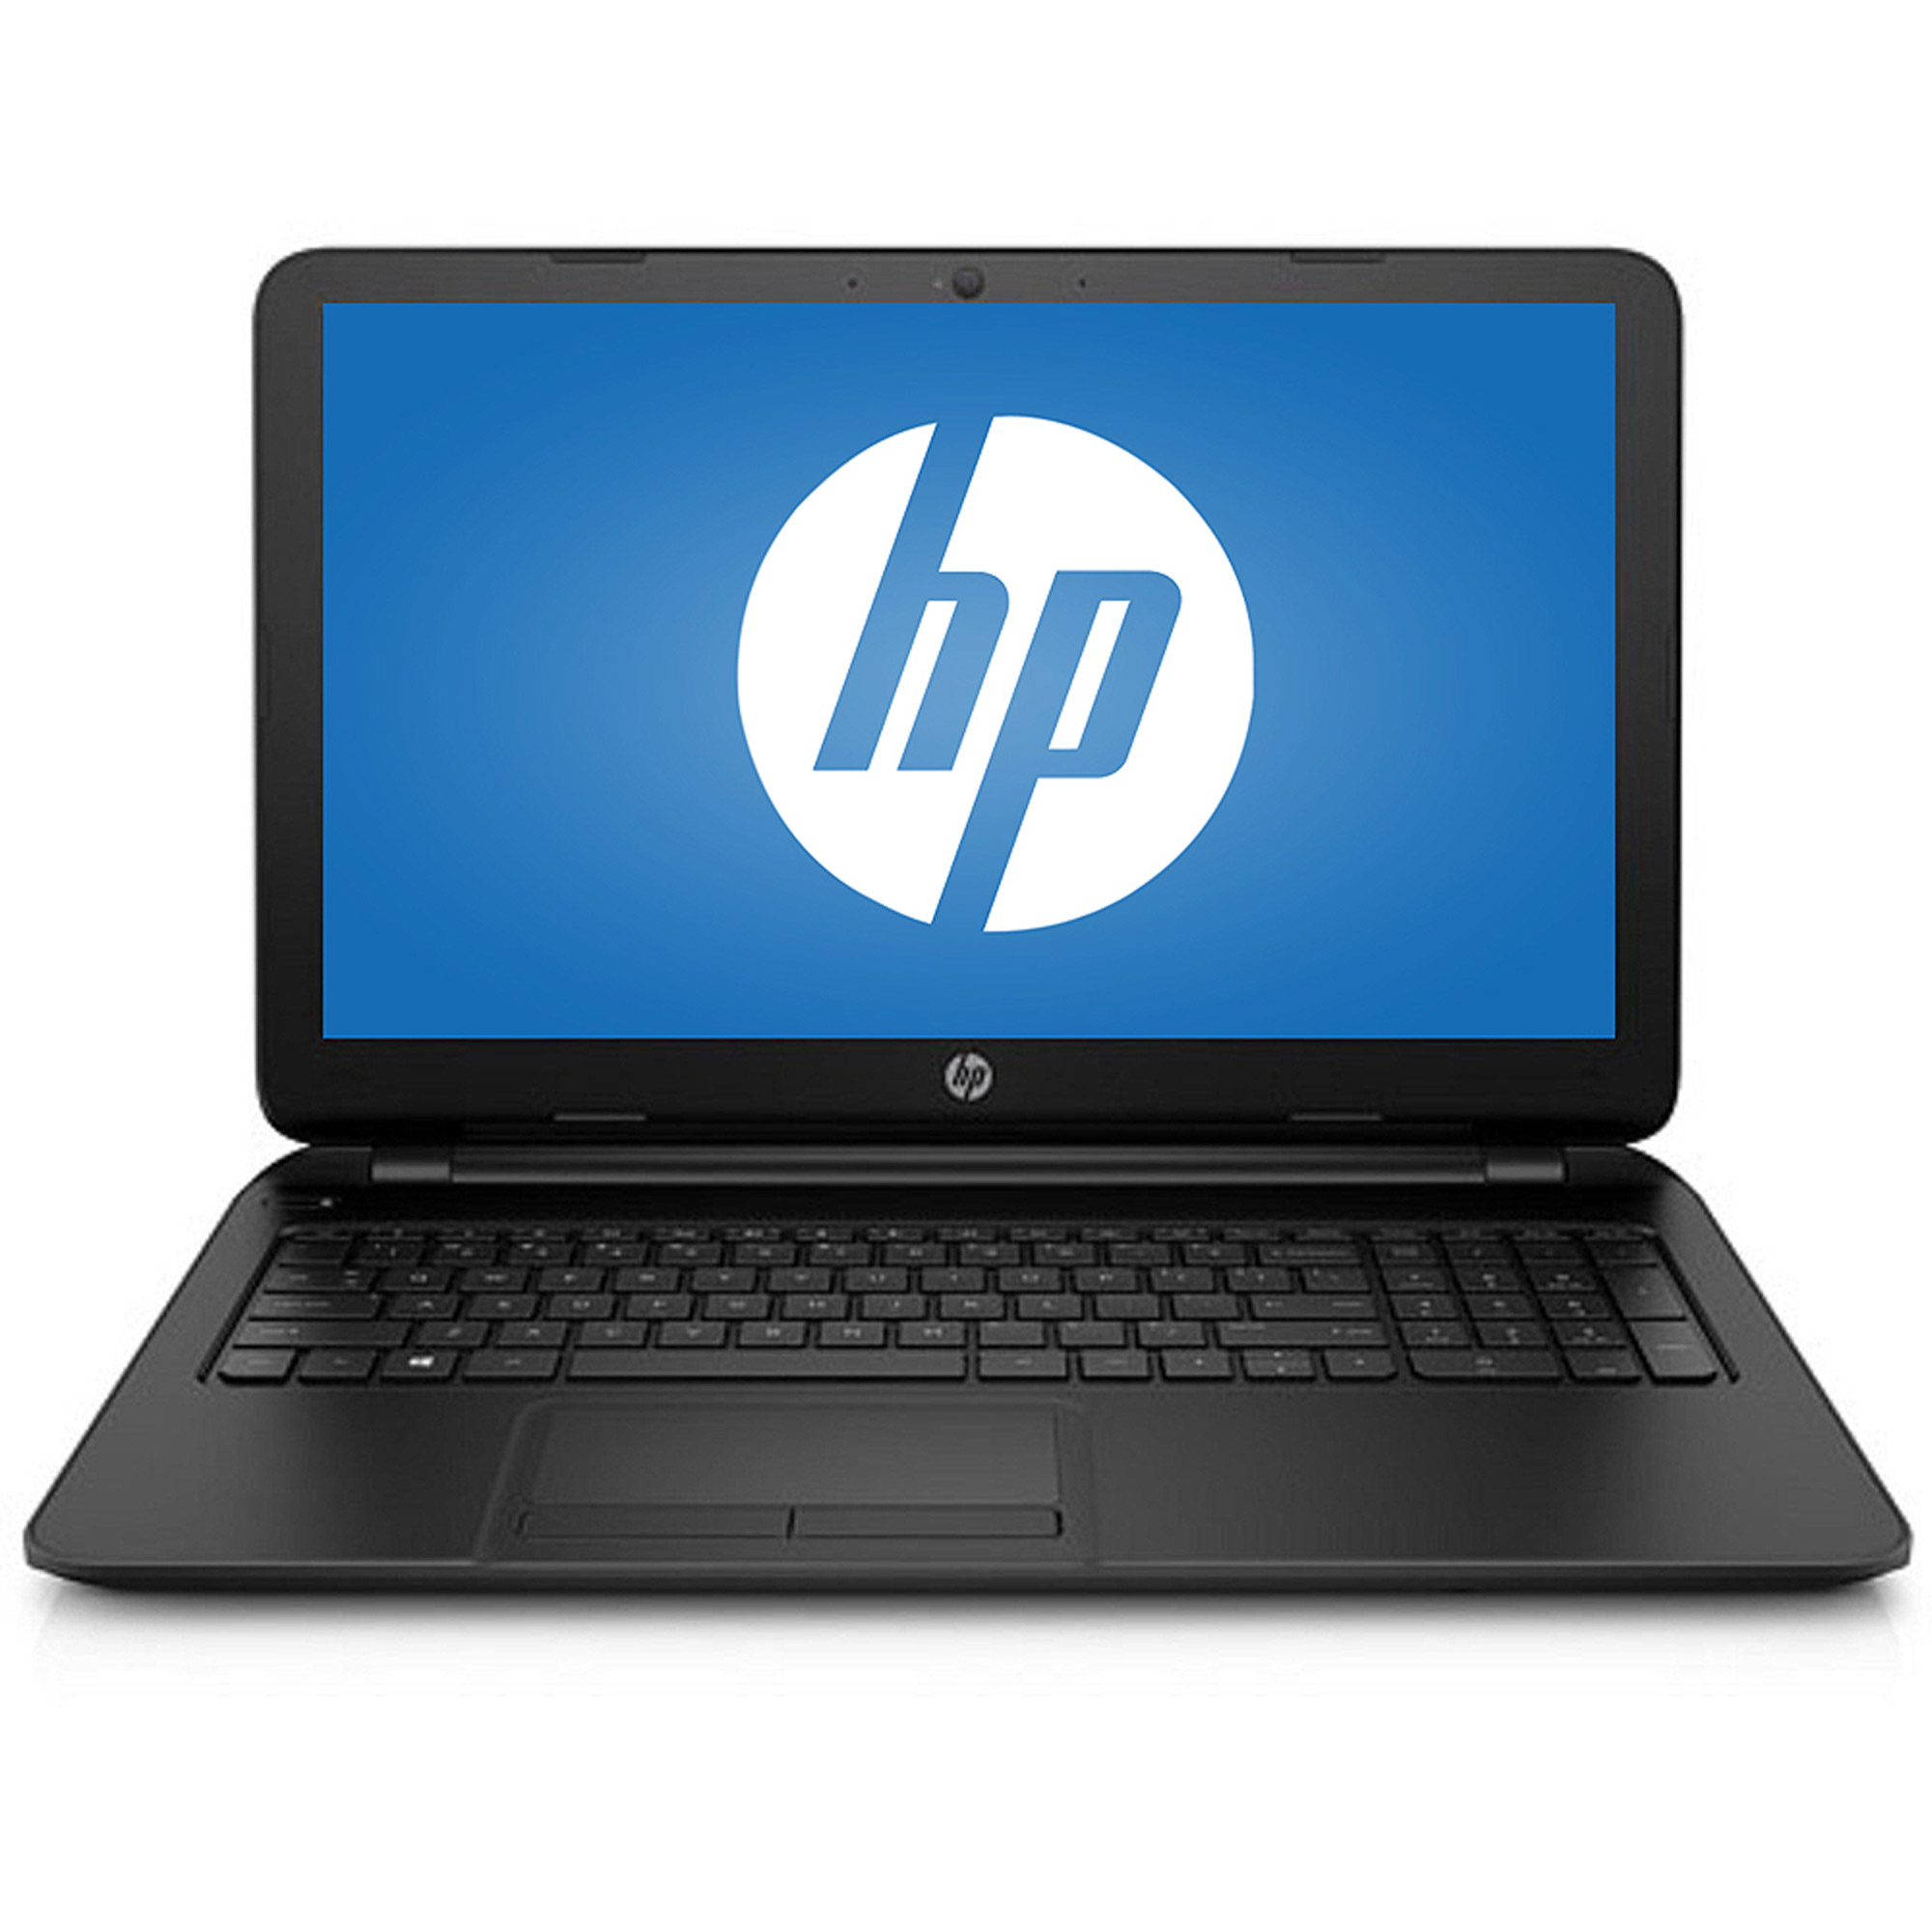 Hp notebook drivers windows 7 32 bit - Hp Sparkling Black 15 6 15 G013cl Laptop Pc With Amd Quad Core A8